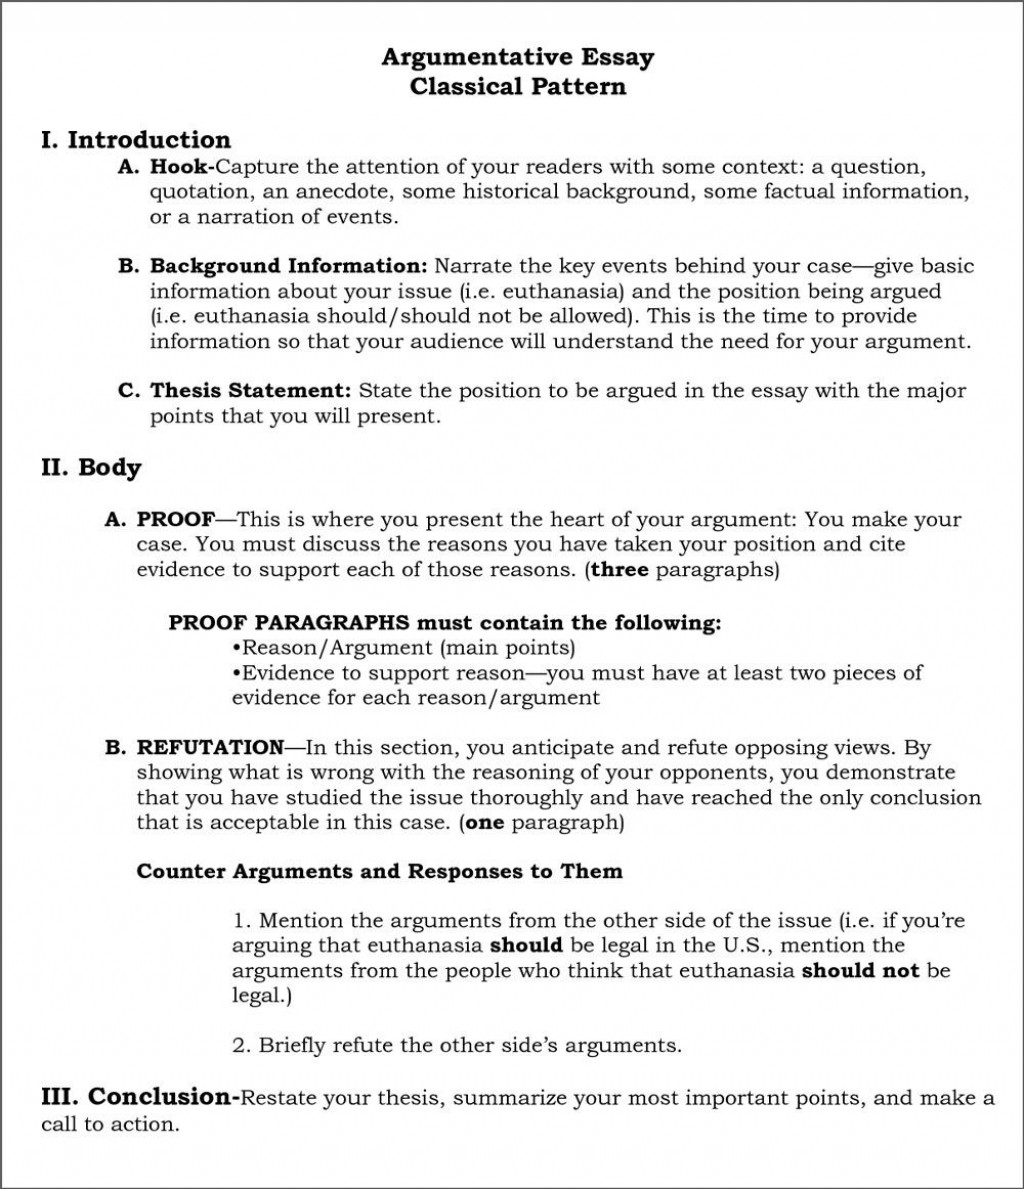 012 How To Conclude An Argumentative Essay Writing Service Pinterest Introduction Pdf Ppt Step By About Fire Prevention Quiz Edgenuity Middle School Top Teach Me Write A Good Conclusion Paragraph For Large